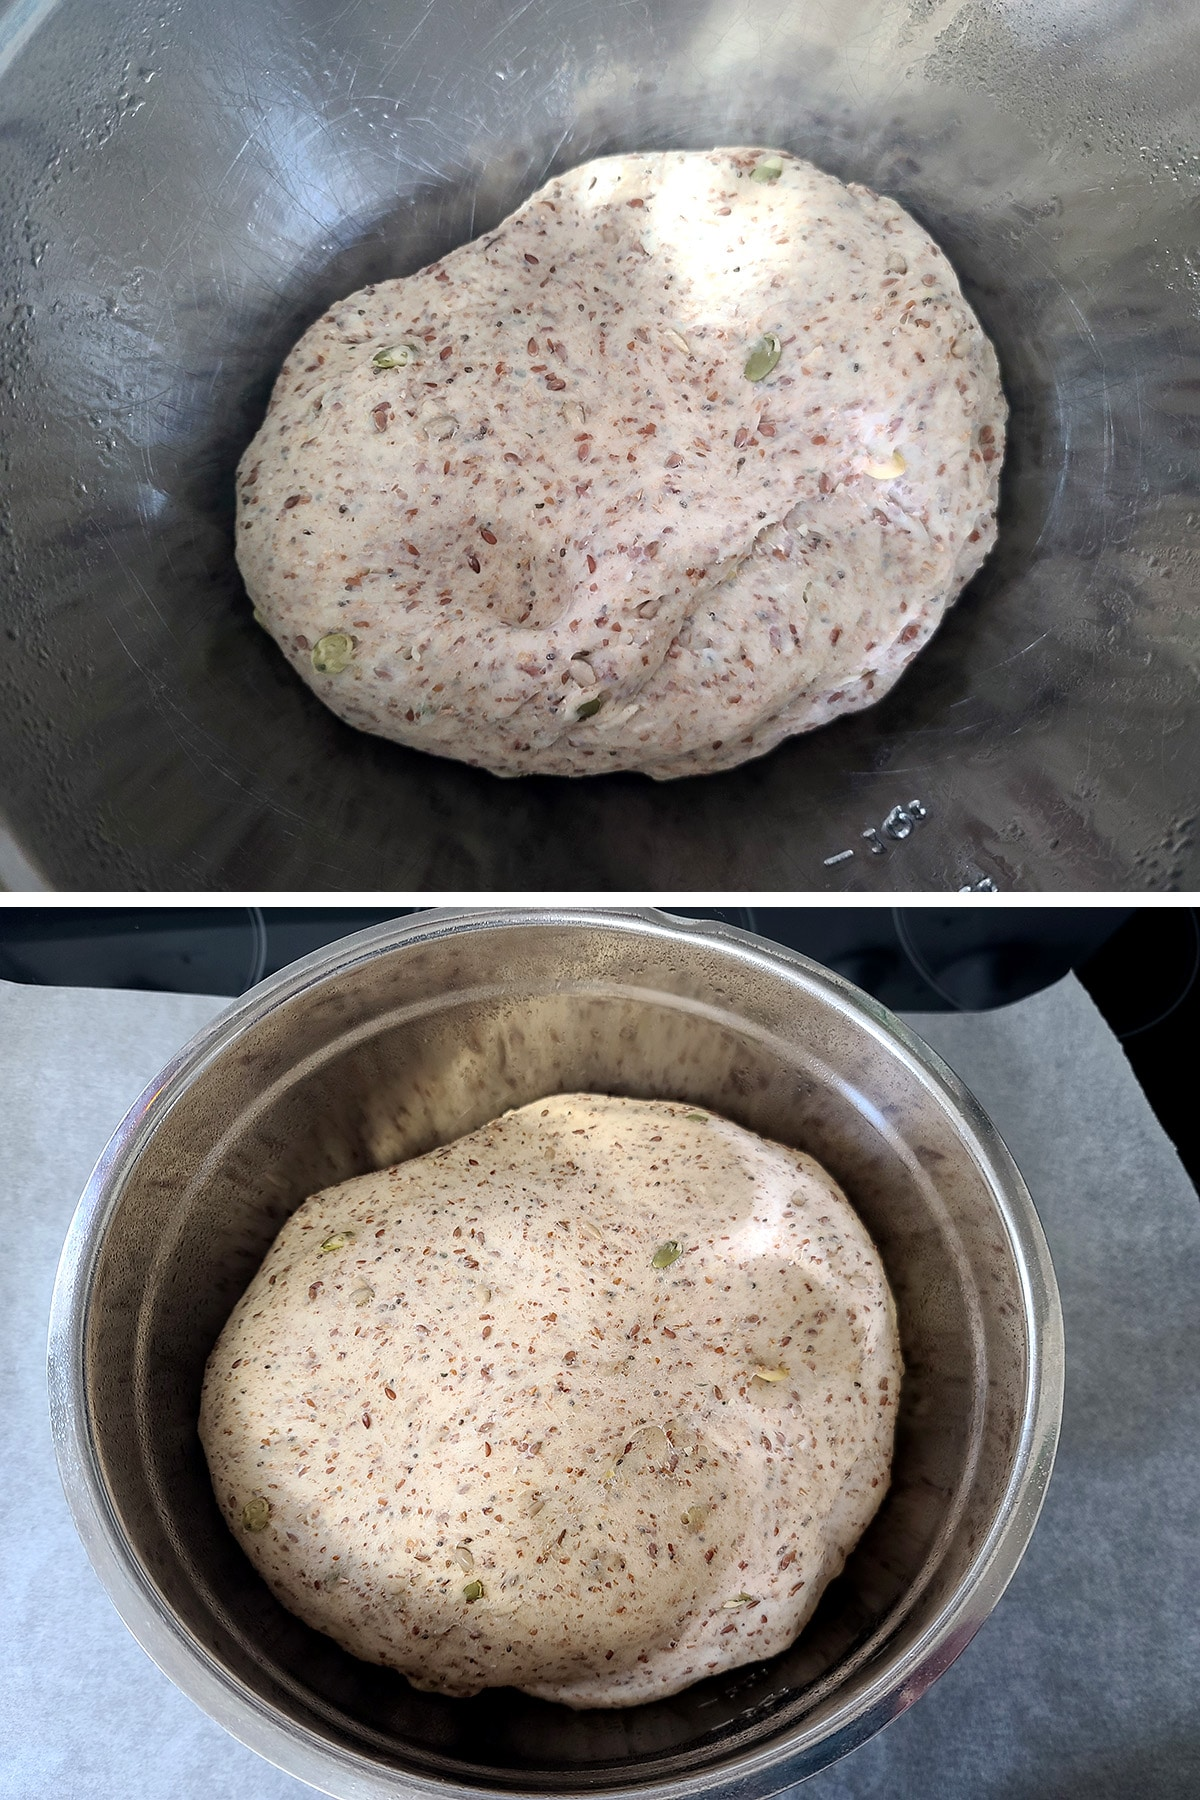 A two part image showing the seeded whole wheat bagel dough in a metal mixing bowl, before and after rising. The dough in the second photo is twice the volume of the dough in the first photo.